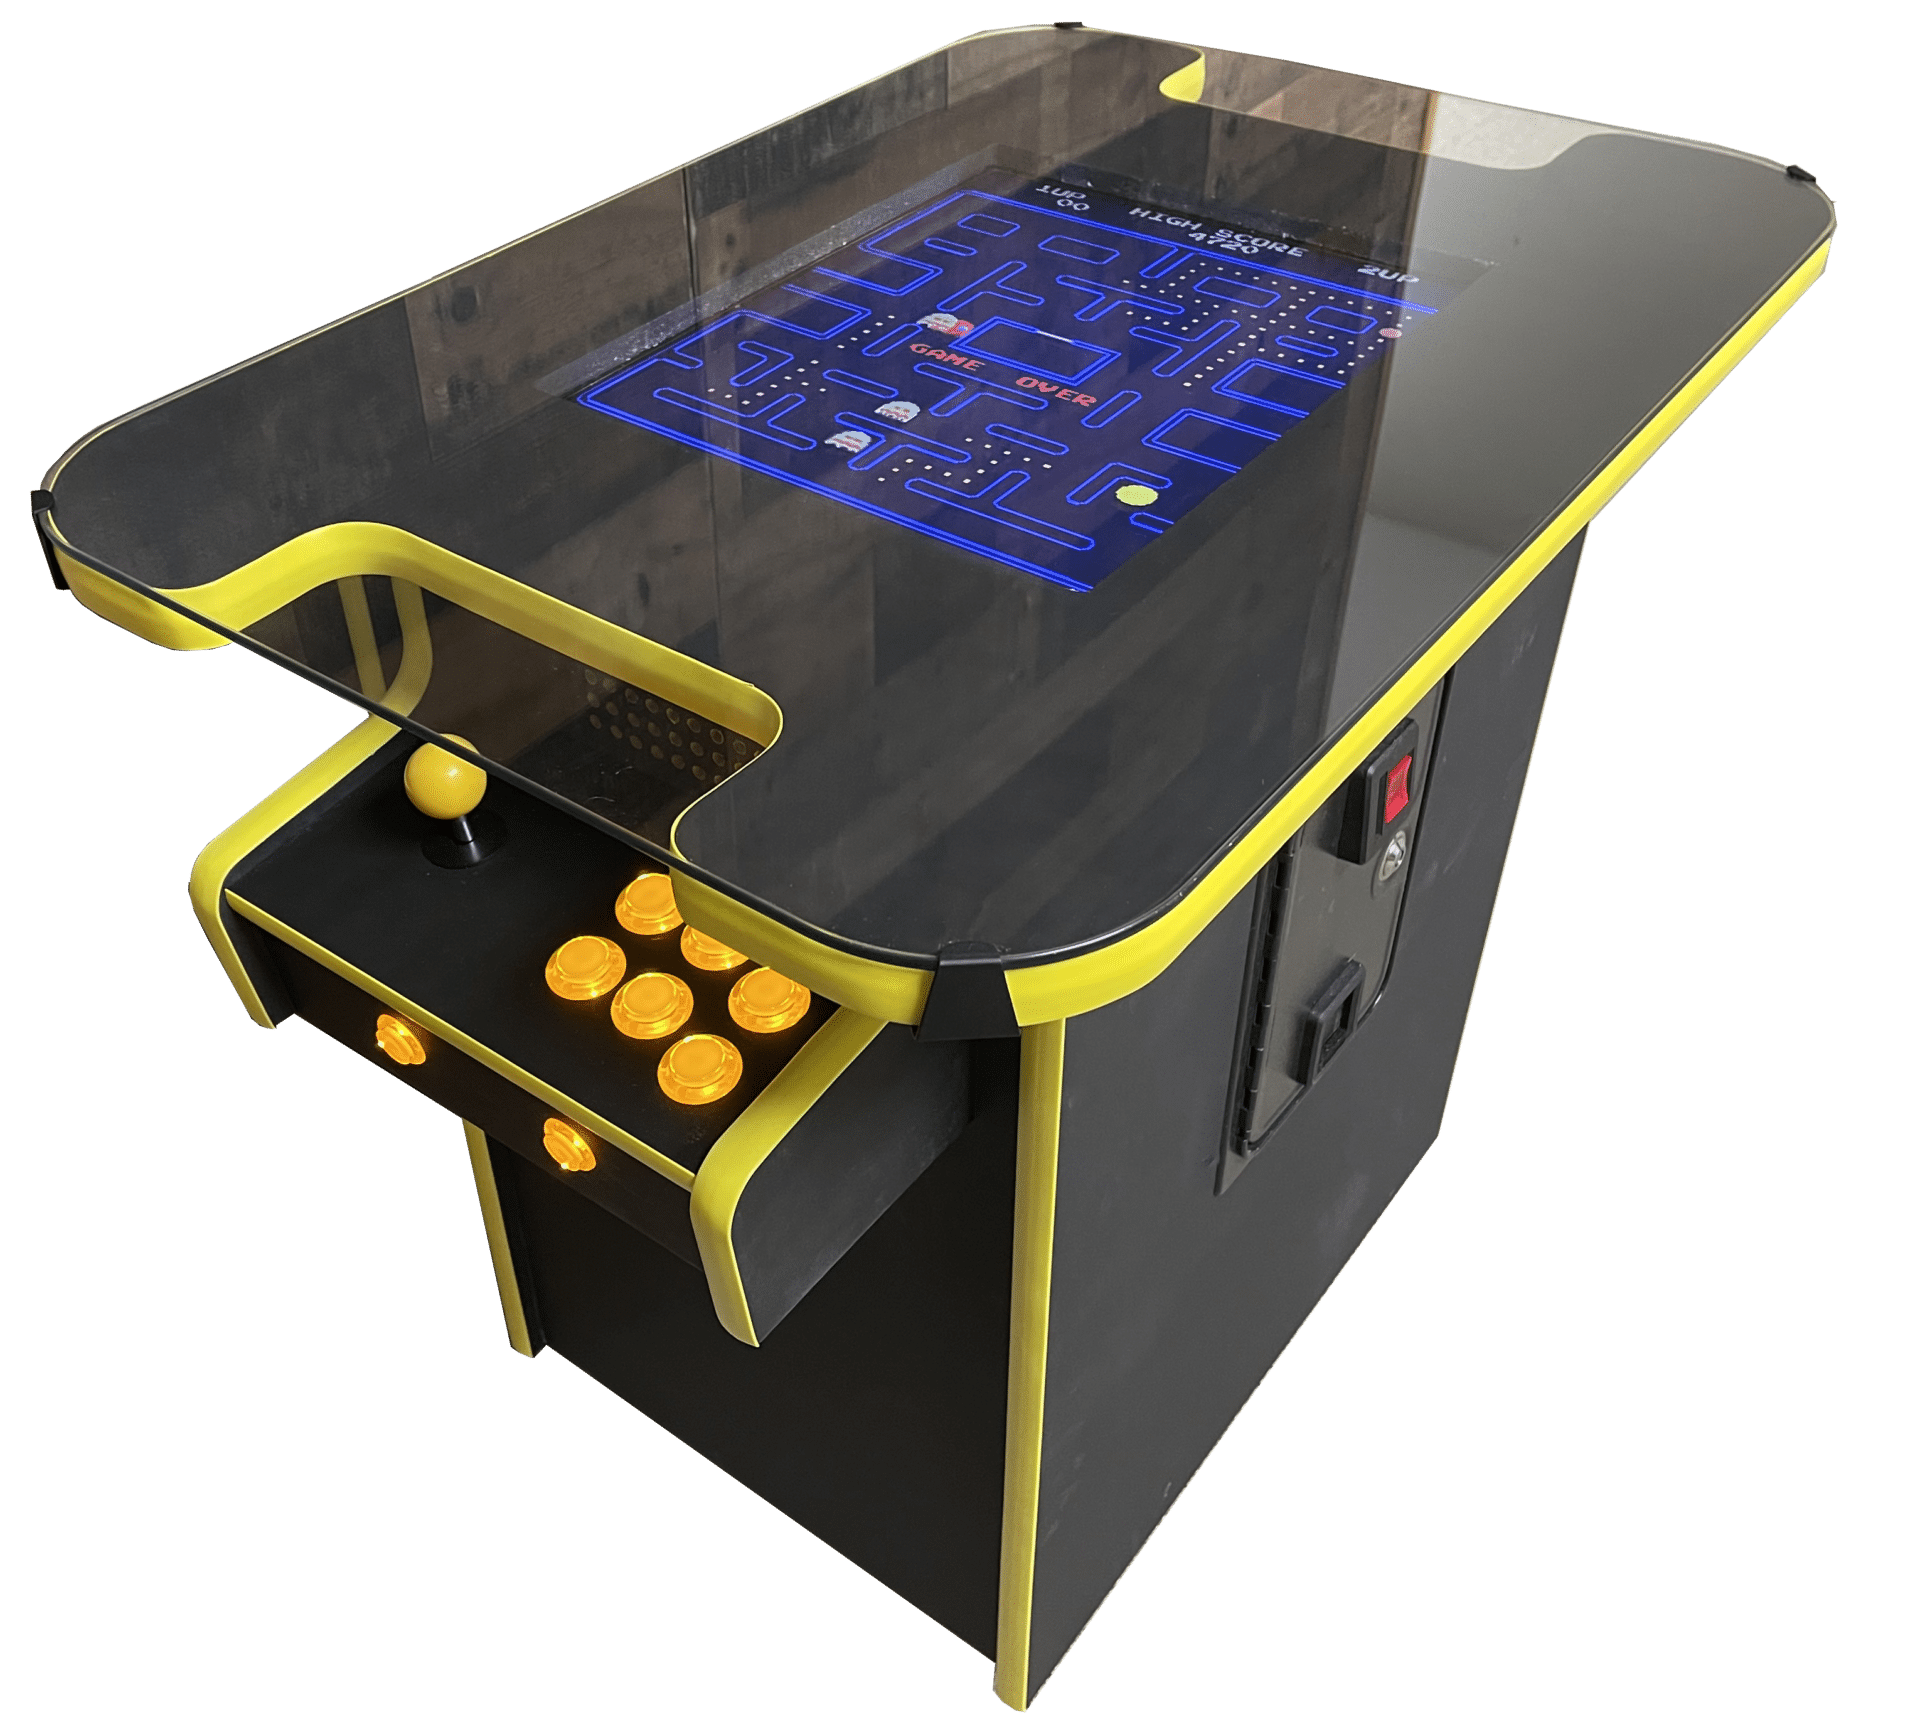 The Best Cocktail Table Arcade Plans